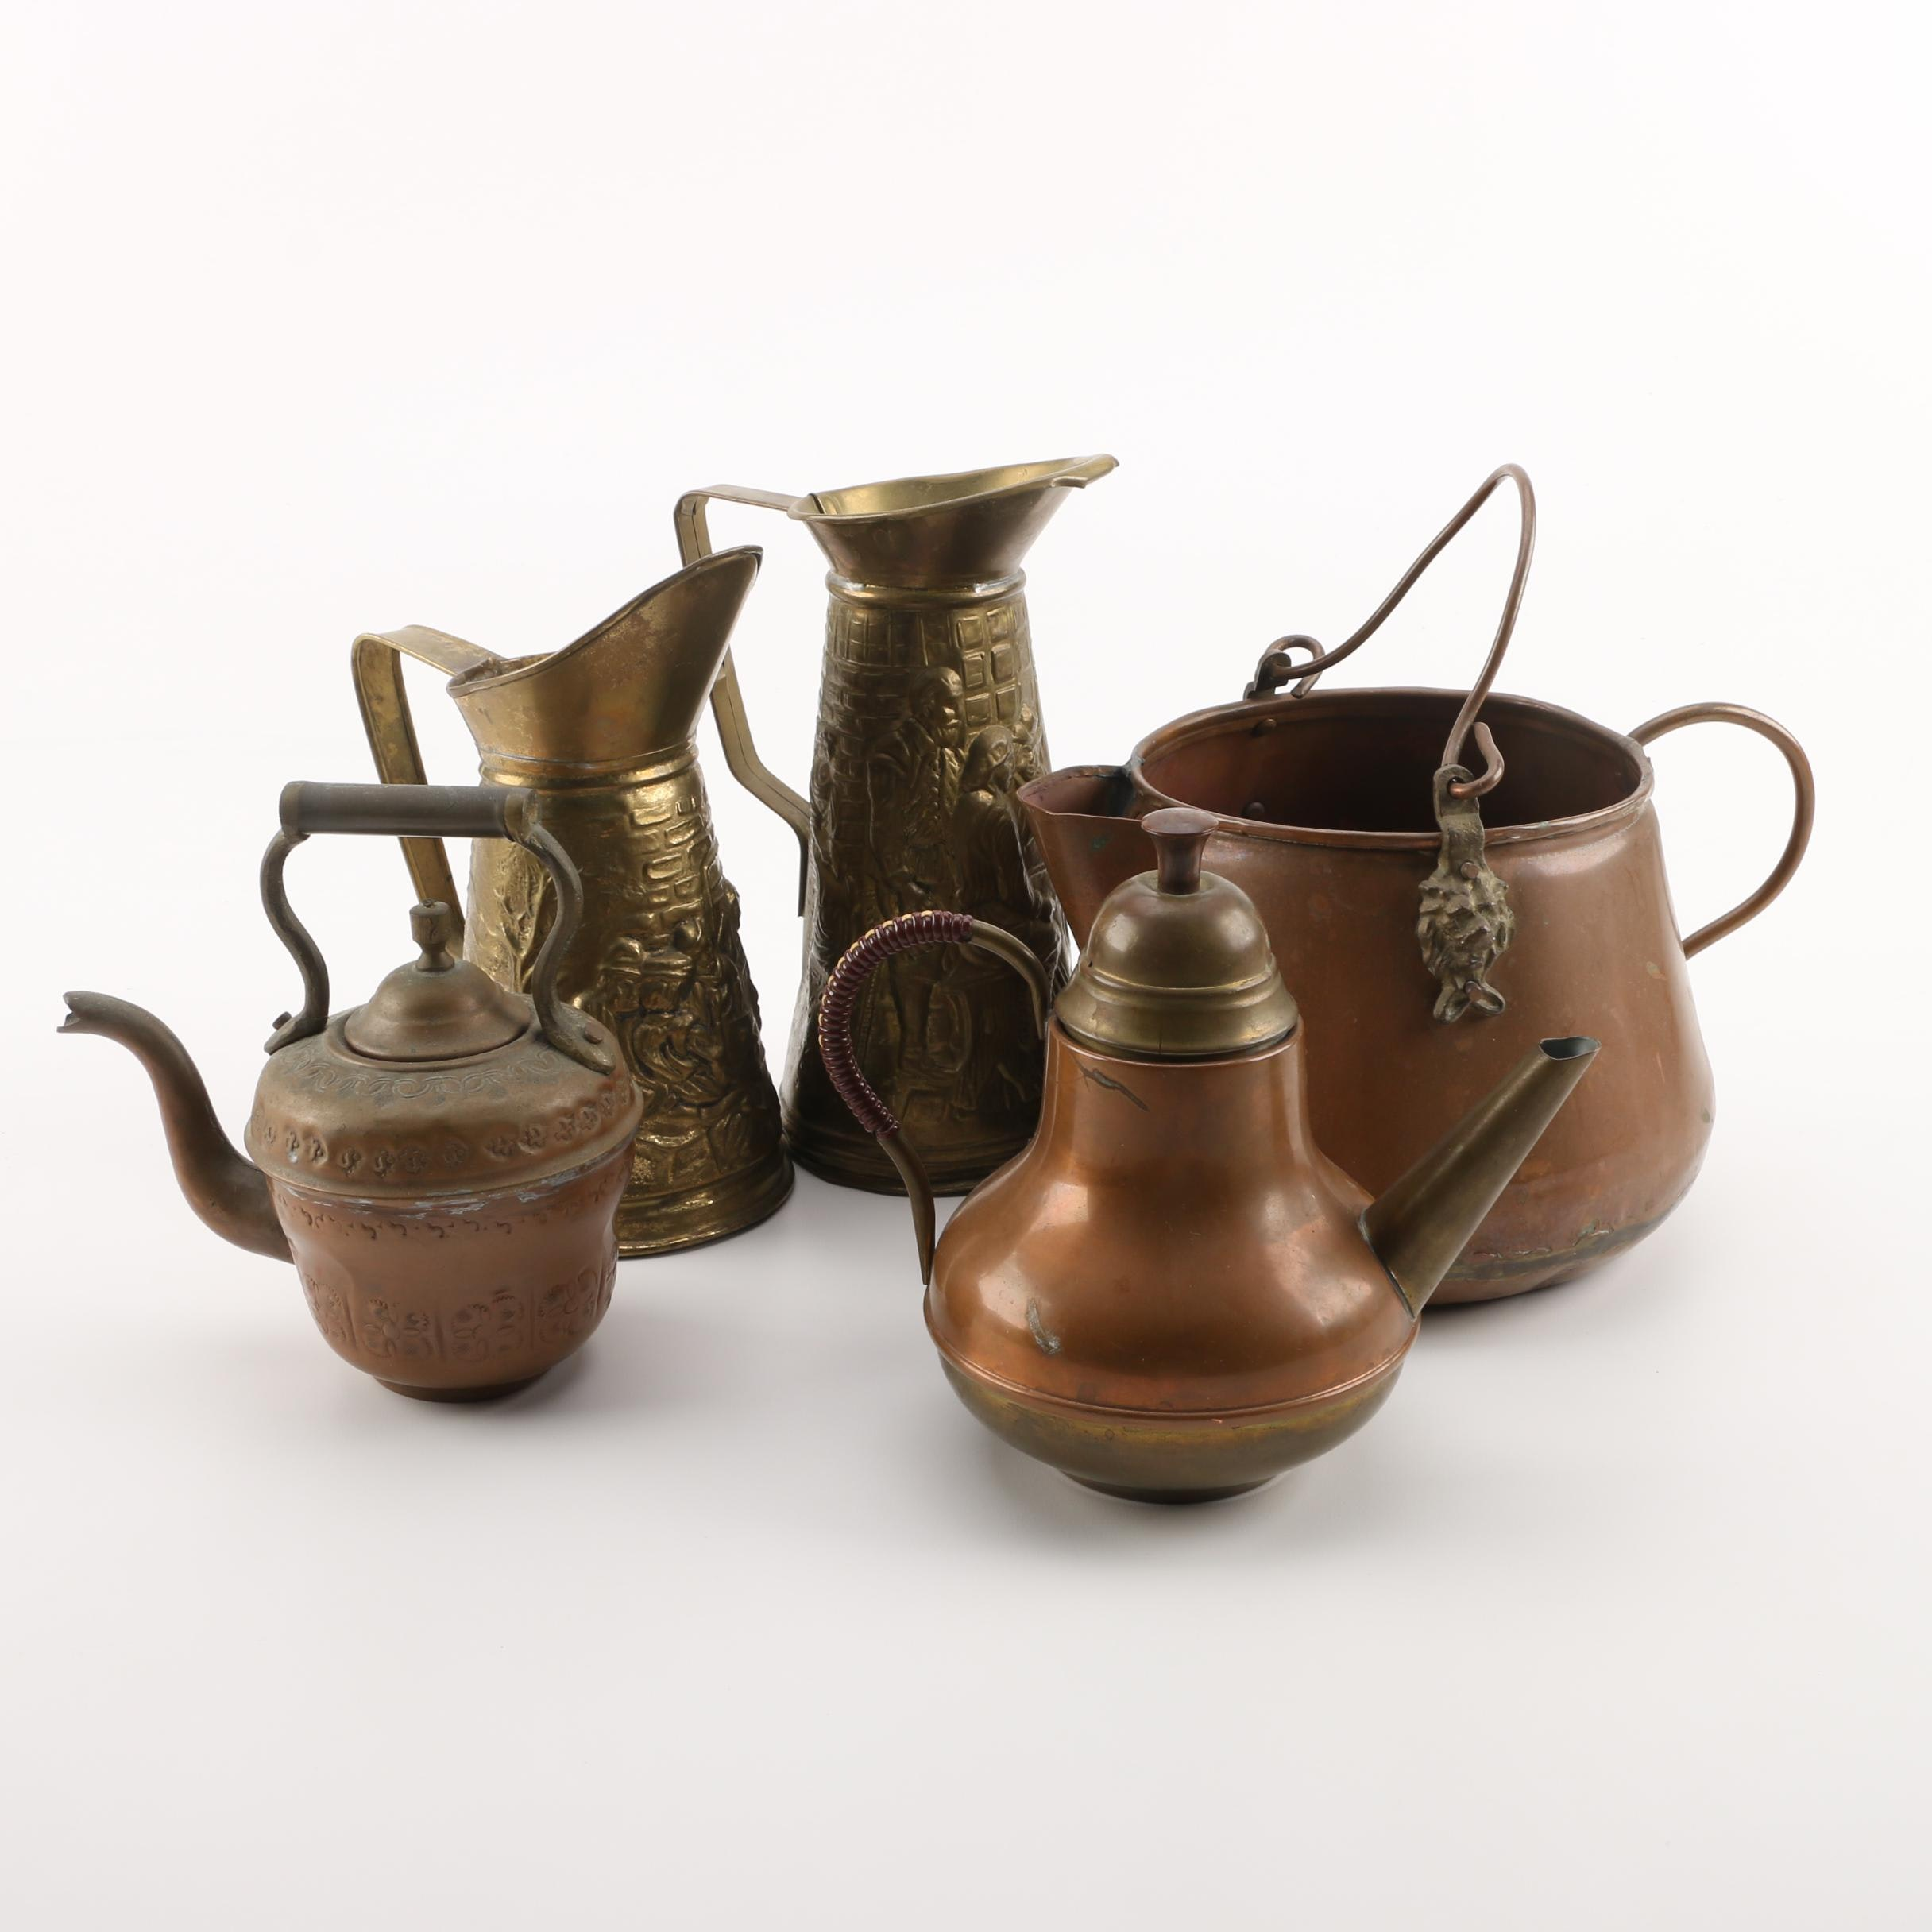 Vintage and Antique Brass and Copper Teapots and Ewers